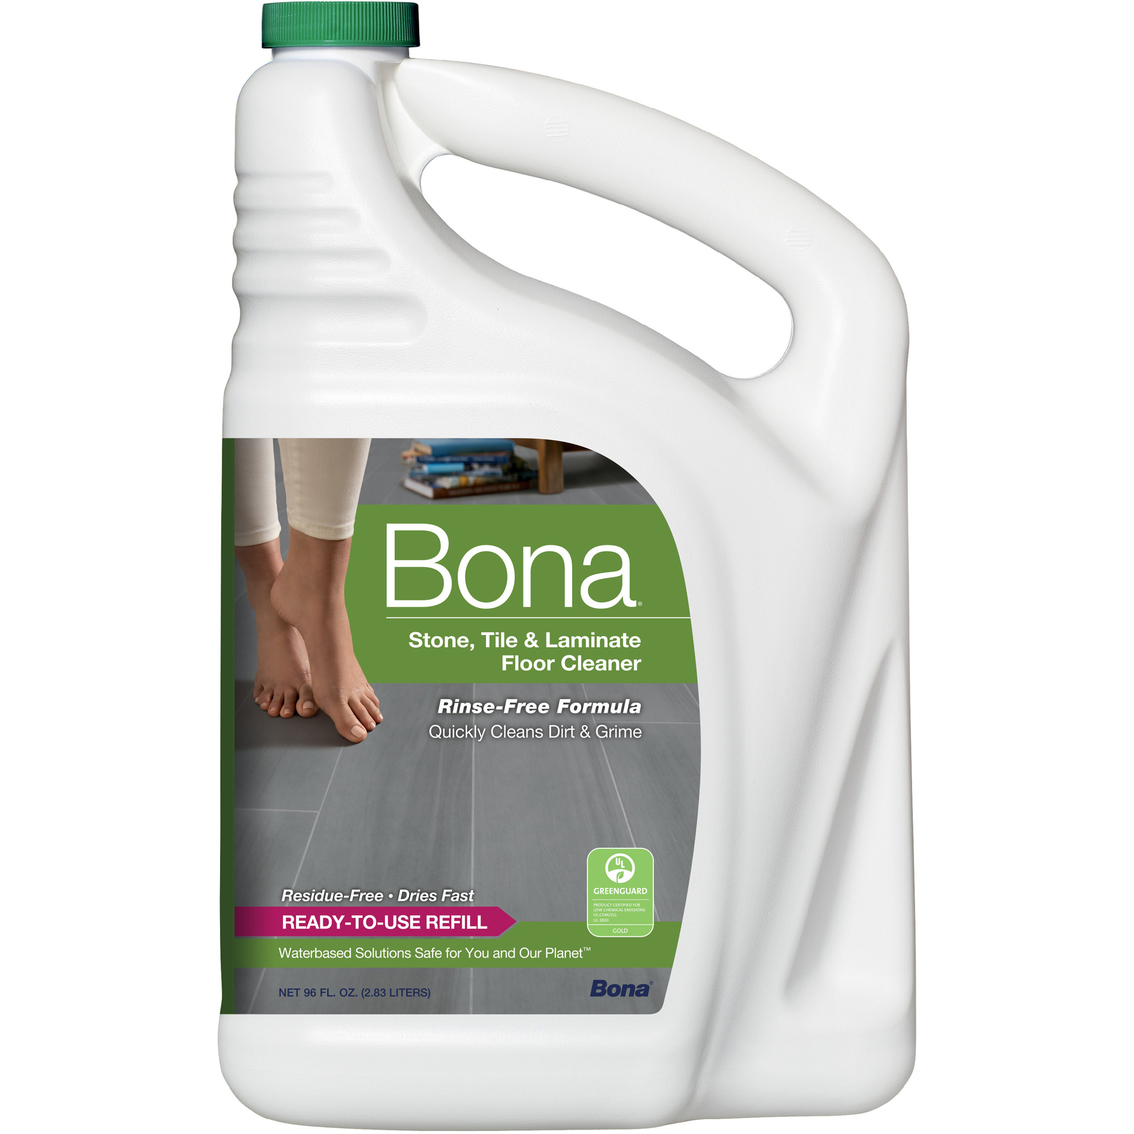 Bona stone tile and laminate floor cleaner refill cleaning bona stone tile and laminate floor cleaner refill dailygadgetfo Image collections